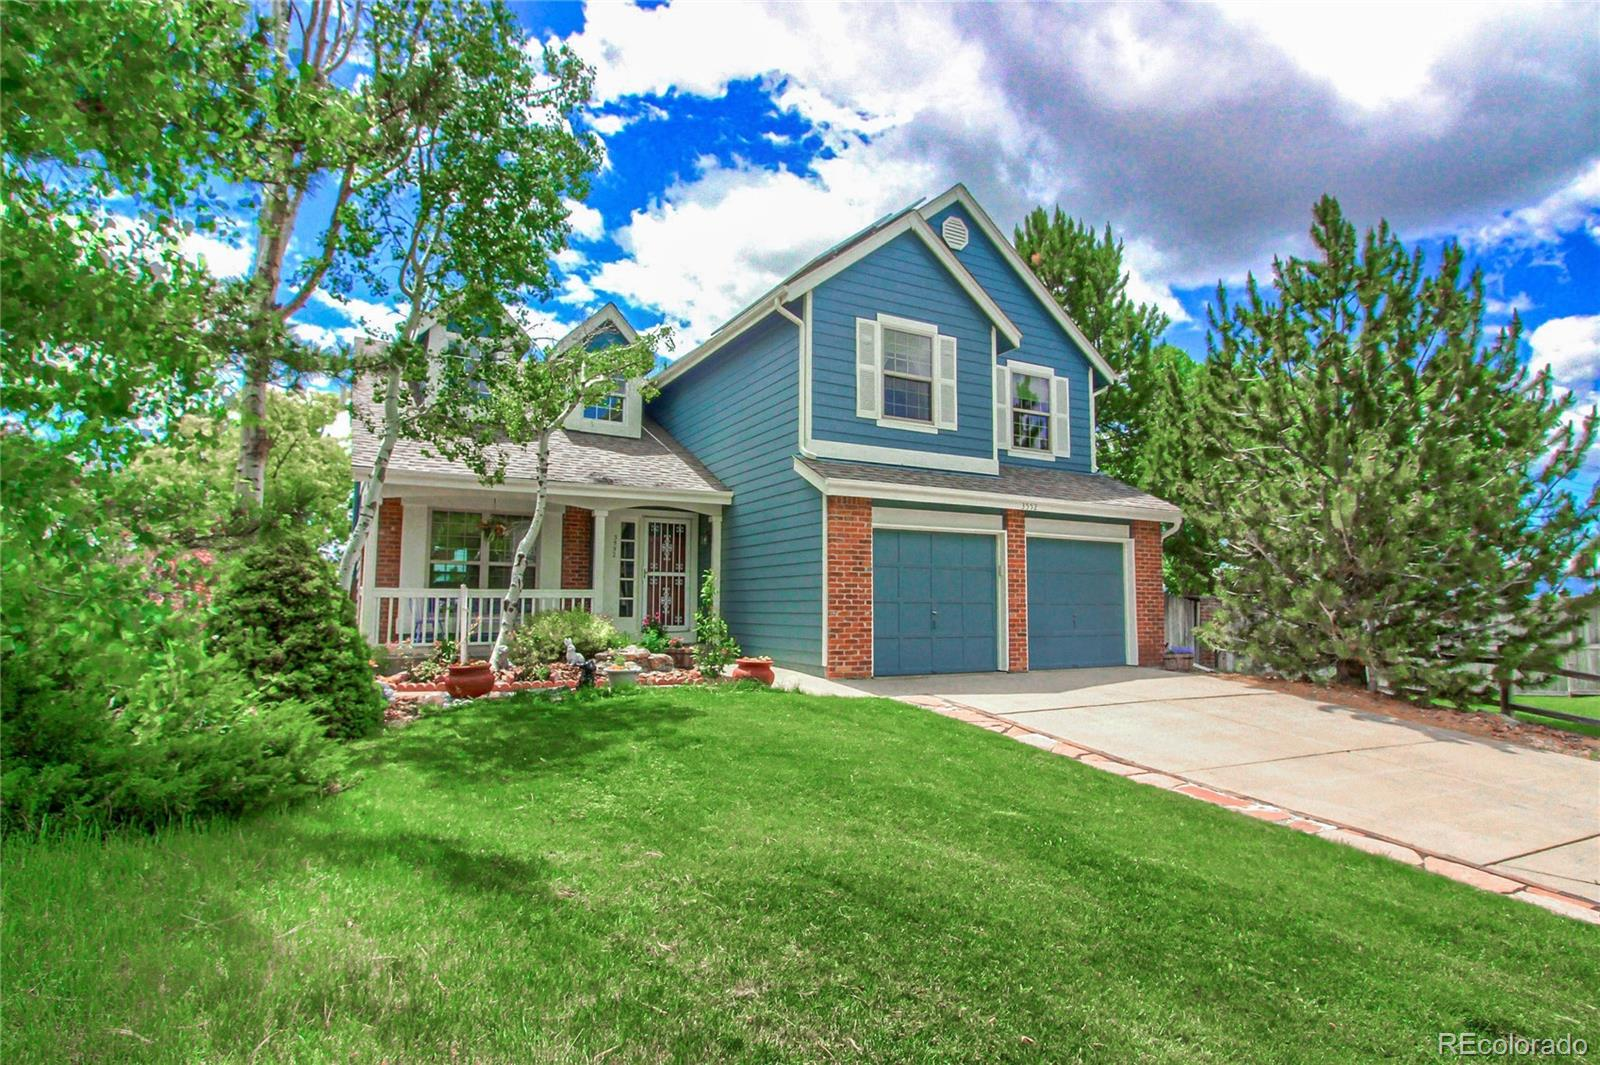 MLS# 9404363 - 1 - 3552 W 100th Place, Westminster, CO 80031